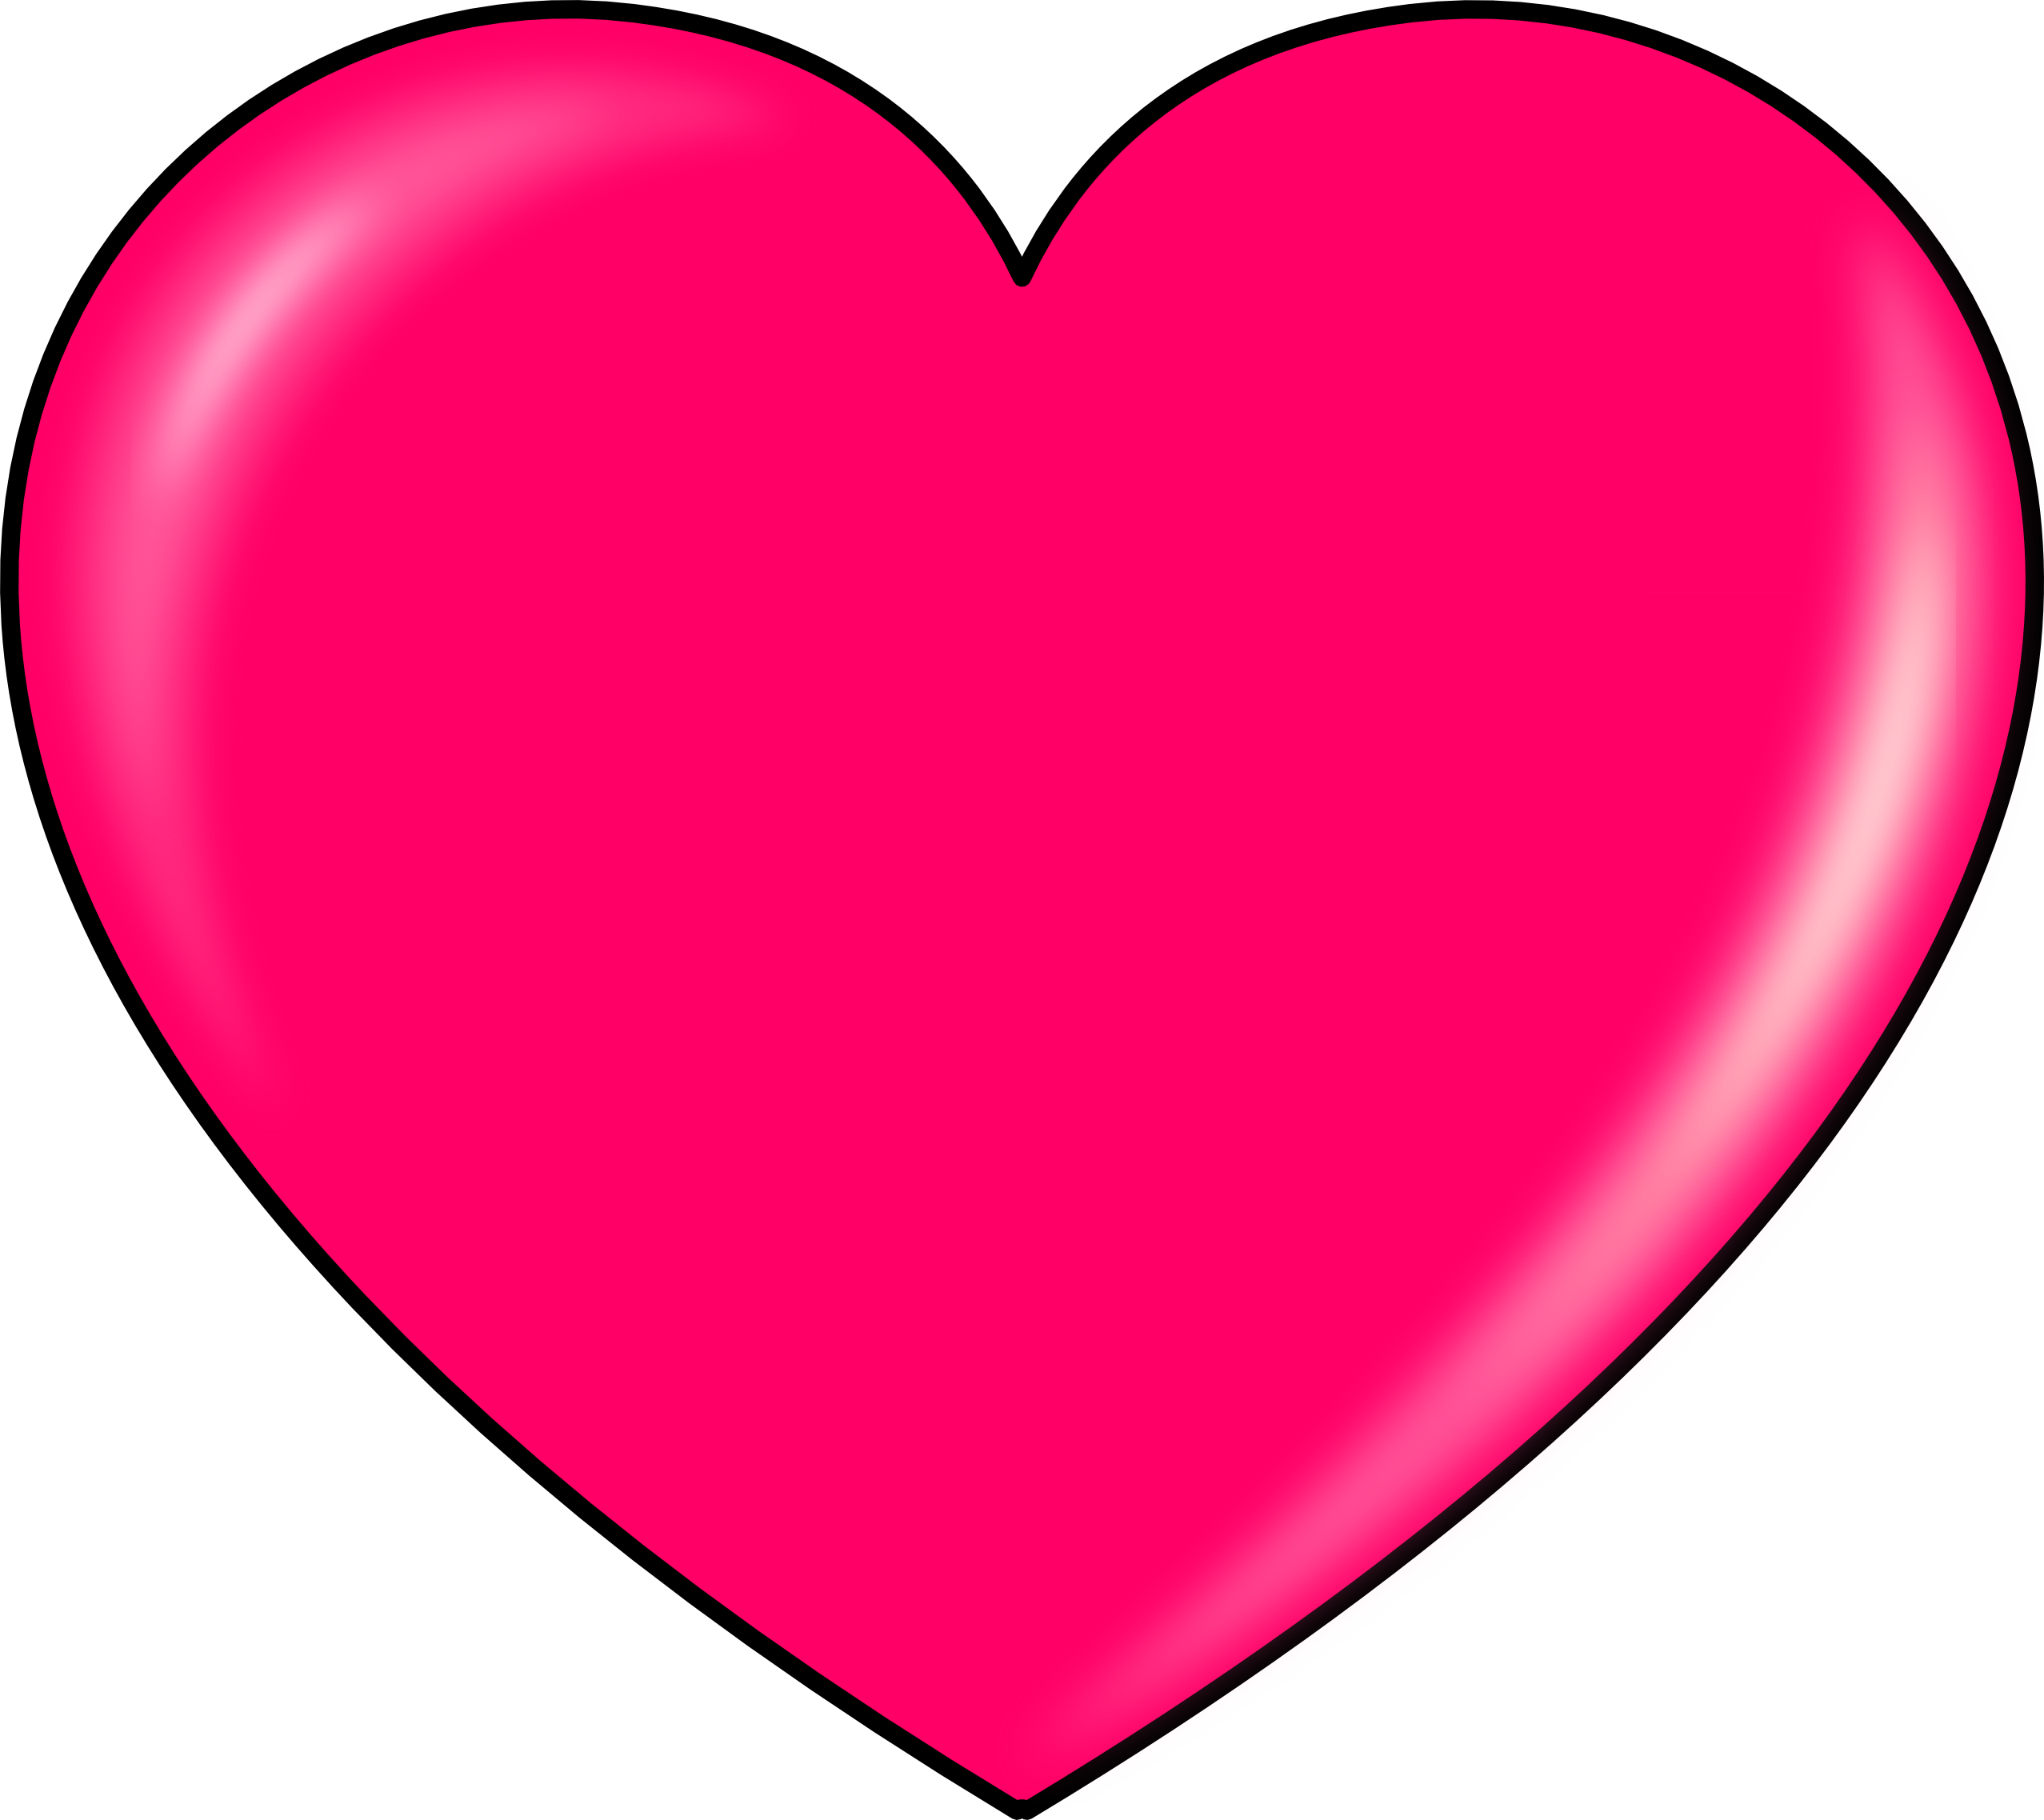 2555x2275 Heart Png Image, Free Download